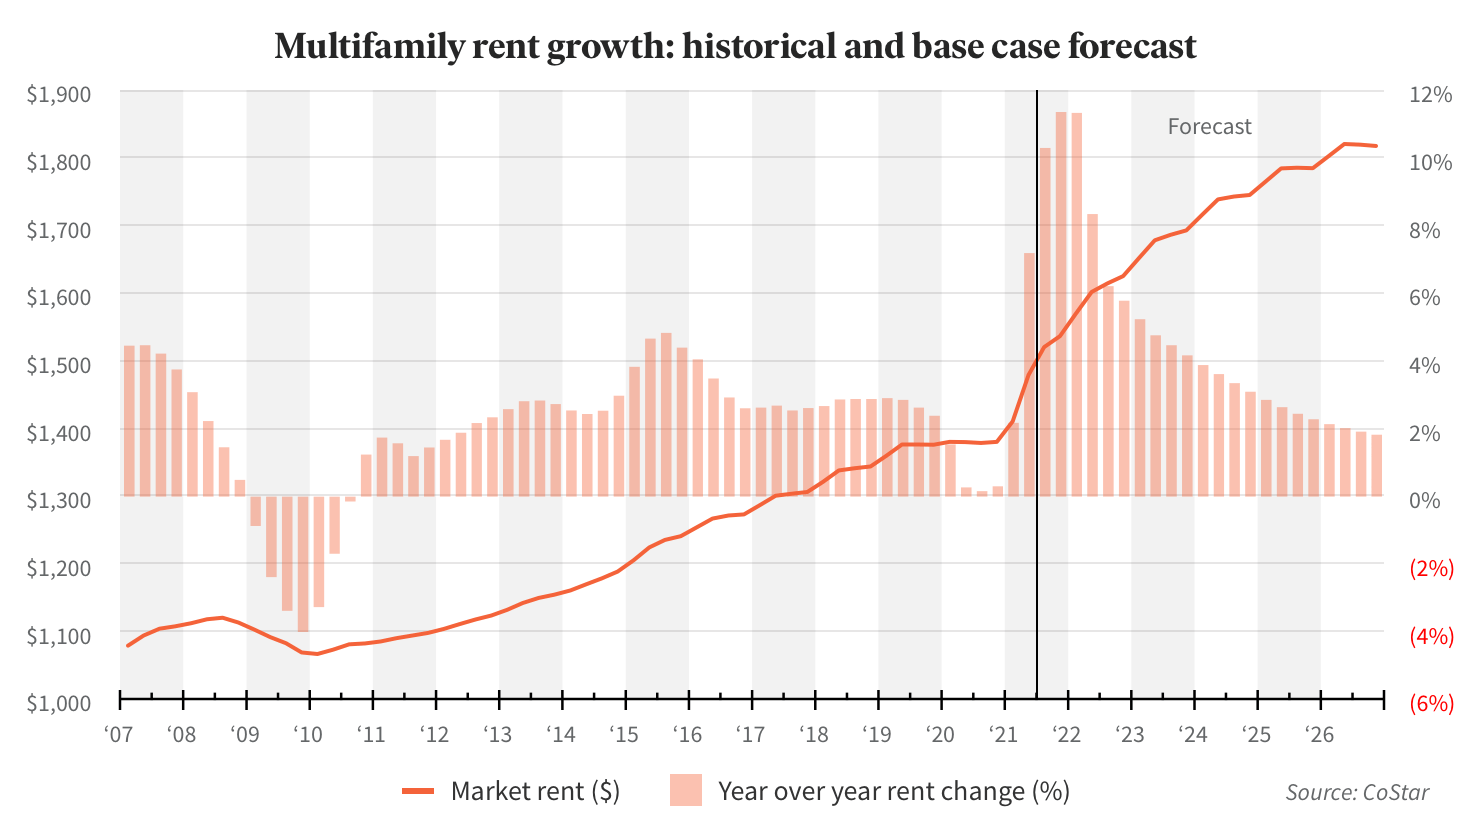 Multifamily rent growth: historical and base case forecast